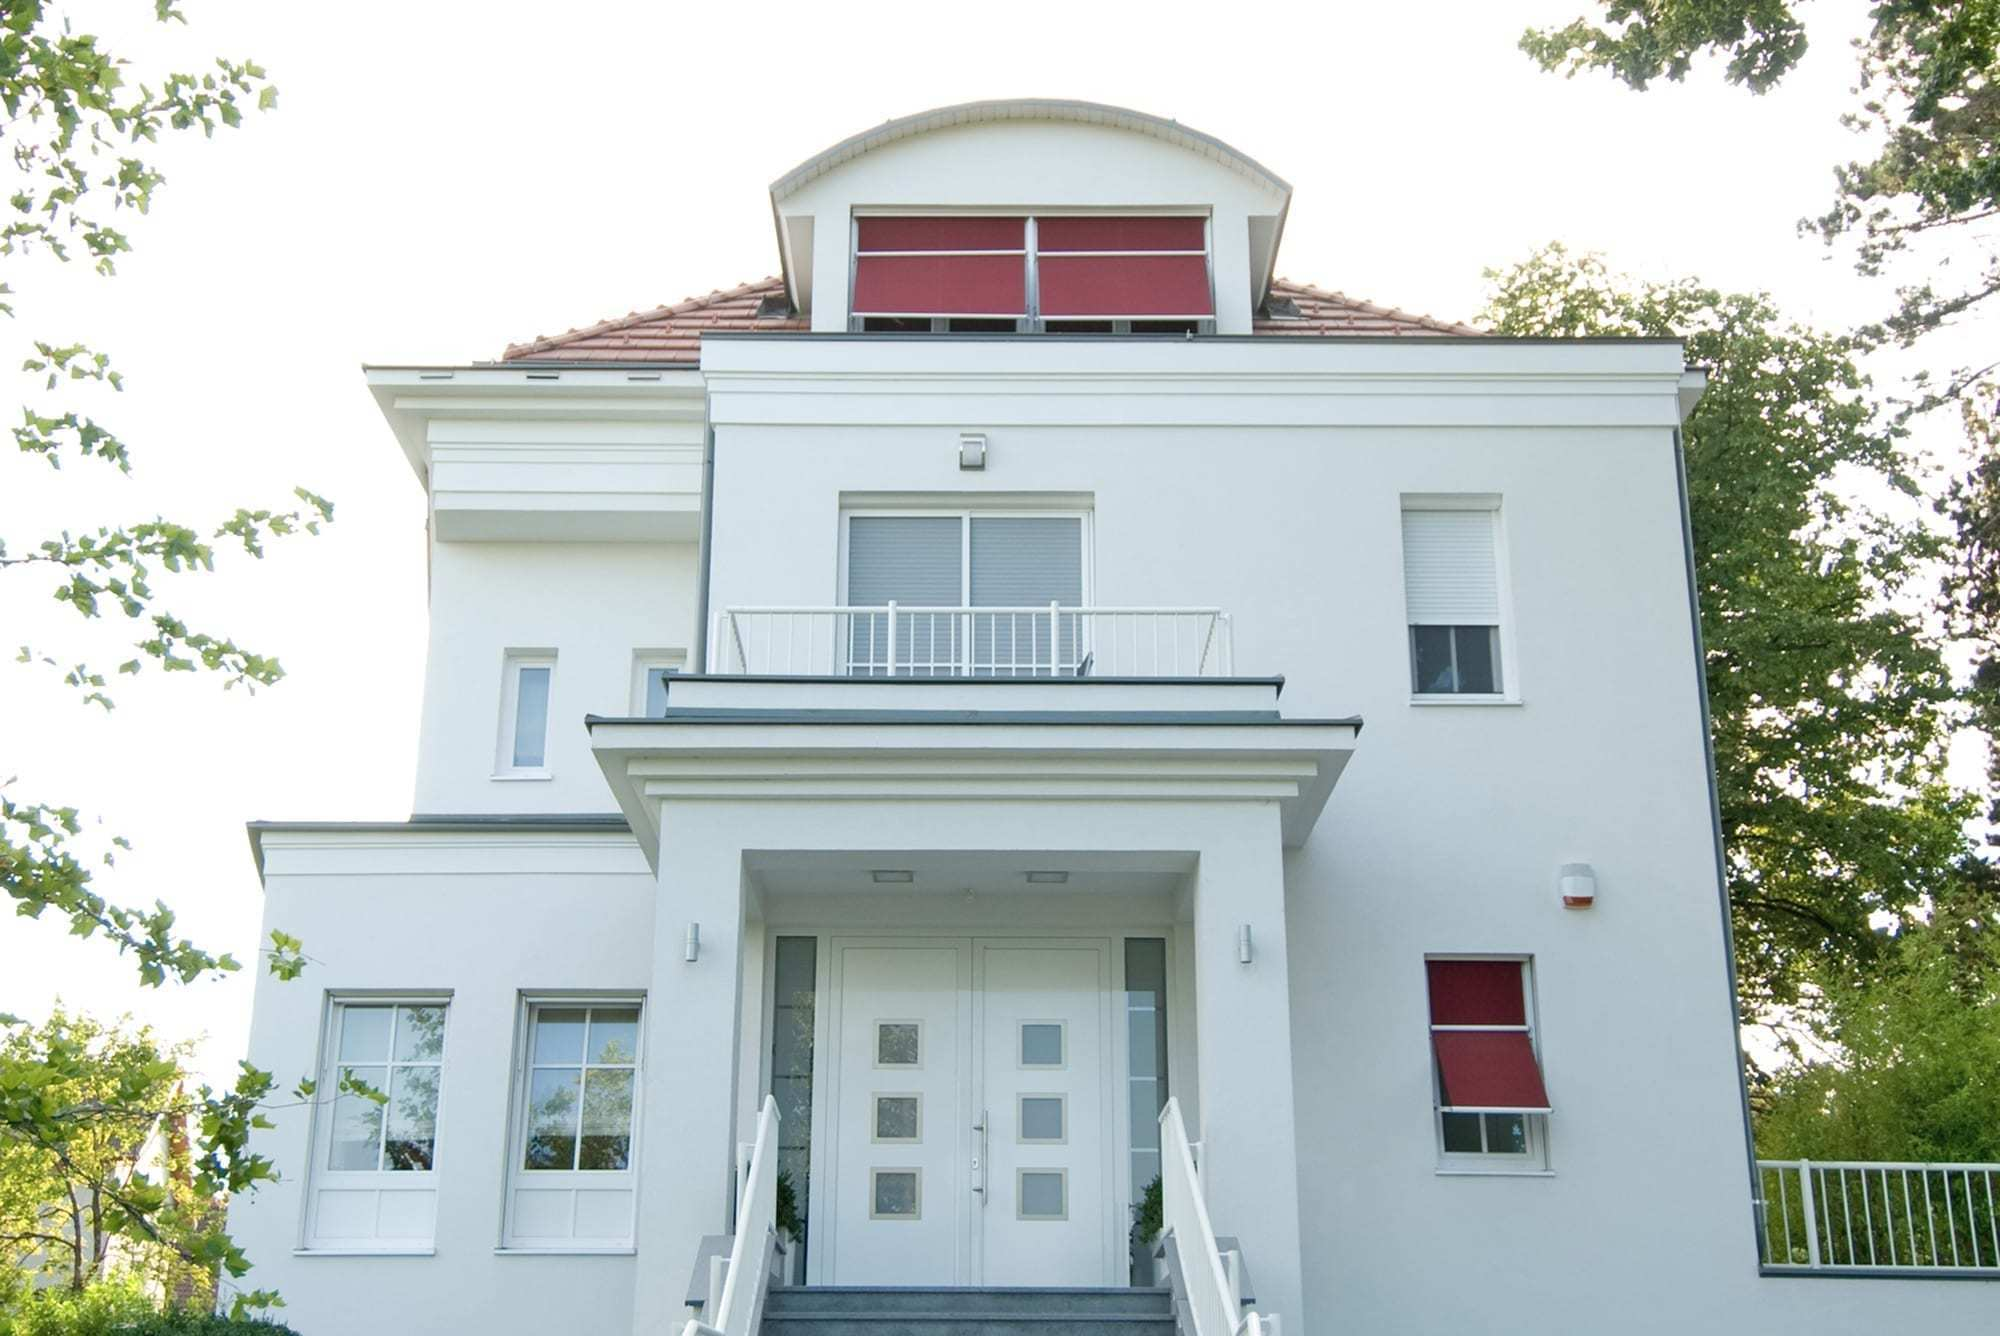 Multifamily homes trocal for Multifamily house